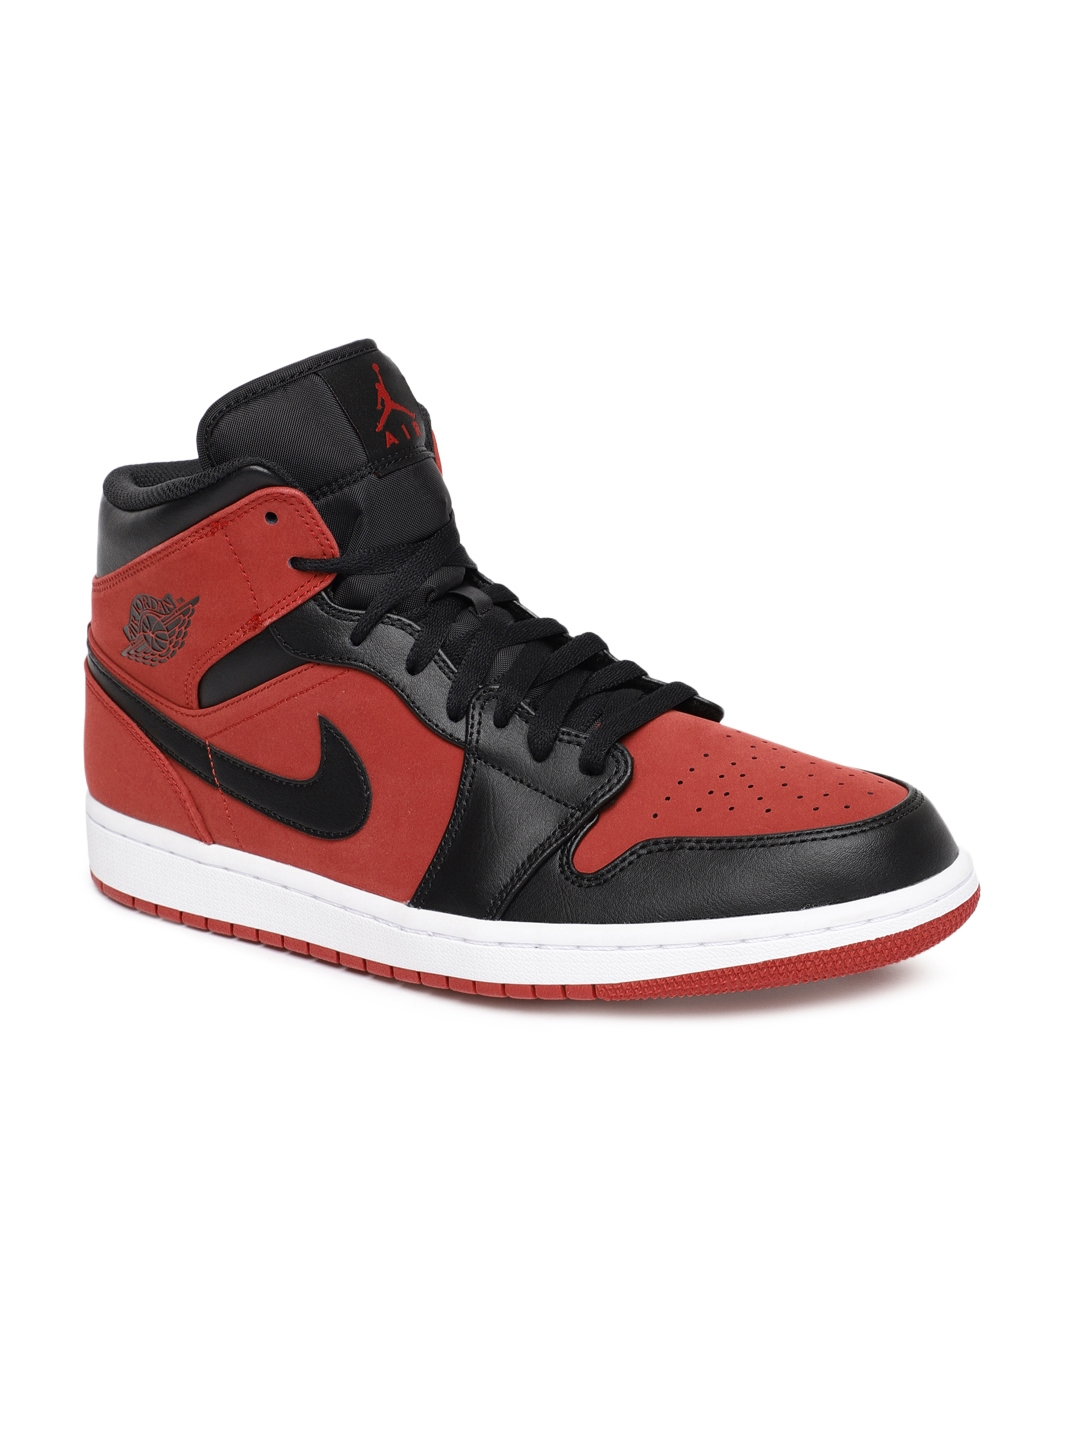 new style 9a050 e4fe8 Nike Men Red   Black High-Top AIR JORDAN 1 Sneakers